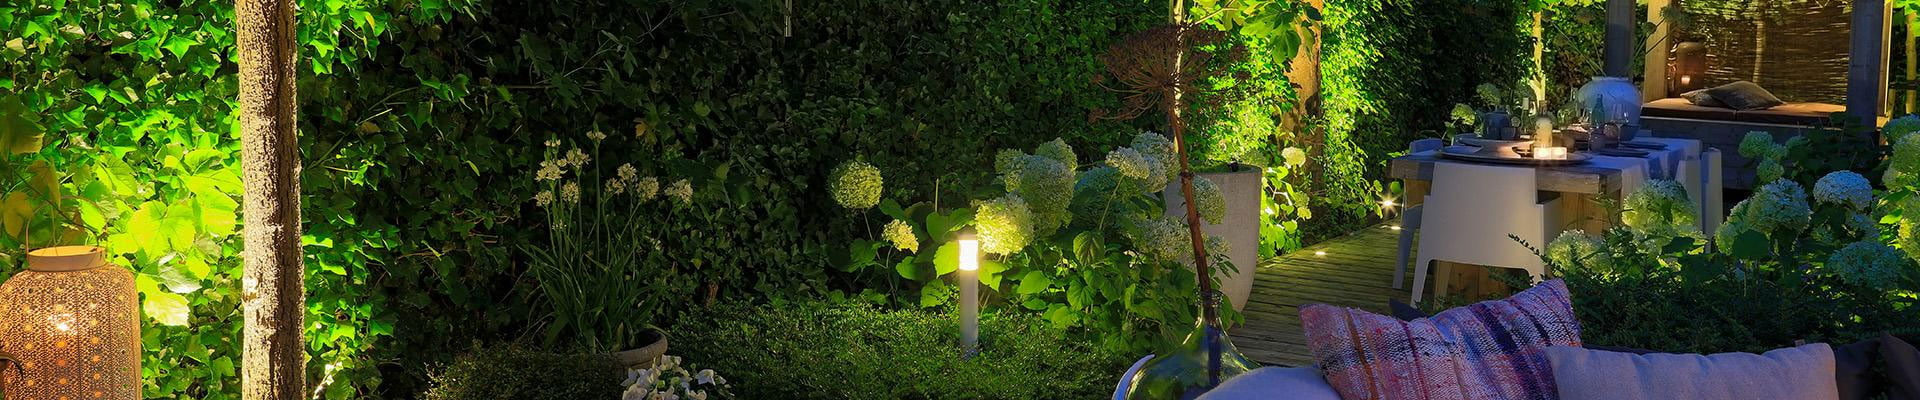 The outdoors is the perfect place to recharge and enjoy life. Outdoor lighting lets you enjoy your yard or deck 24/7, regardless of the season.